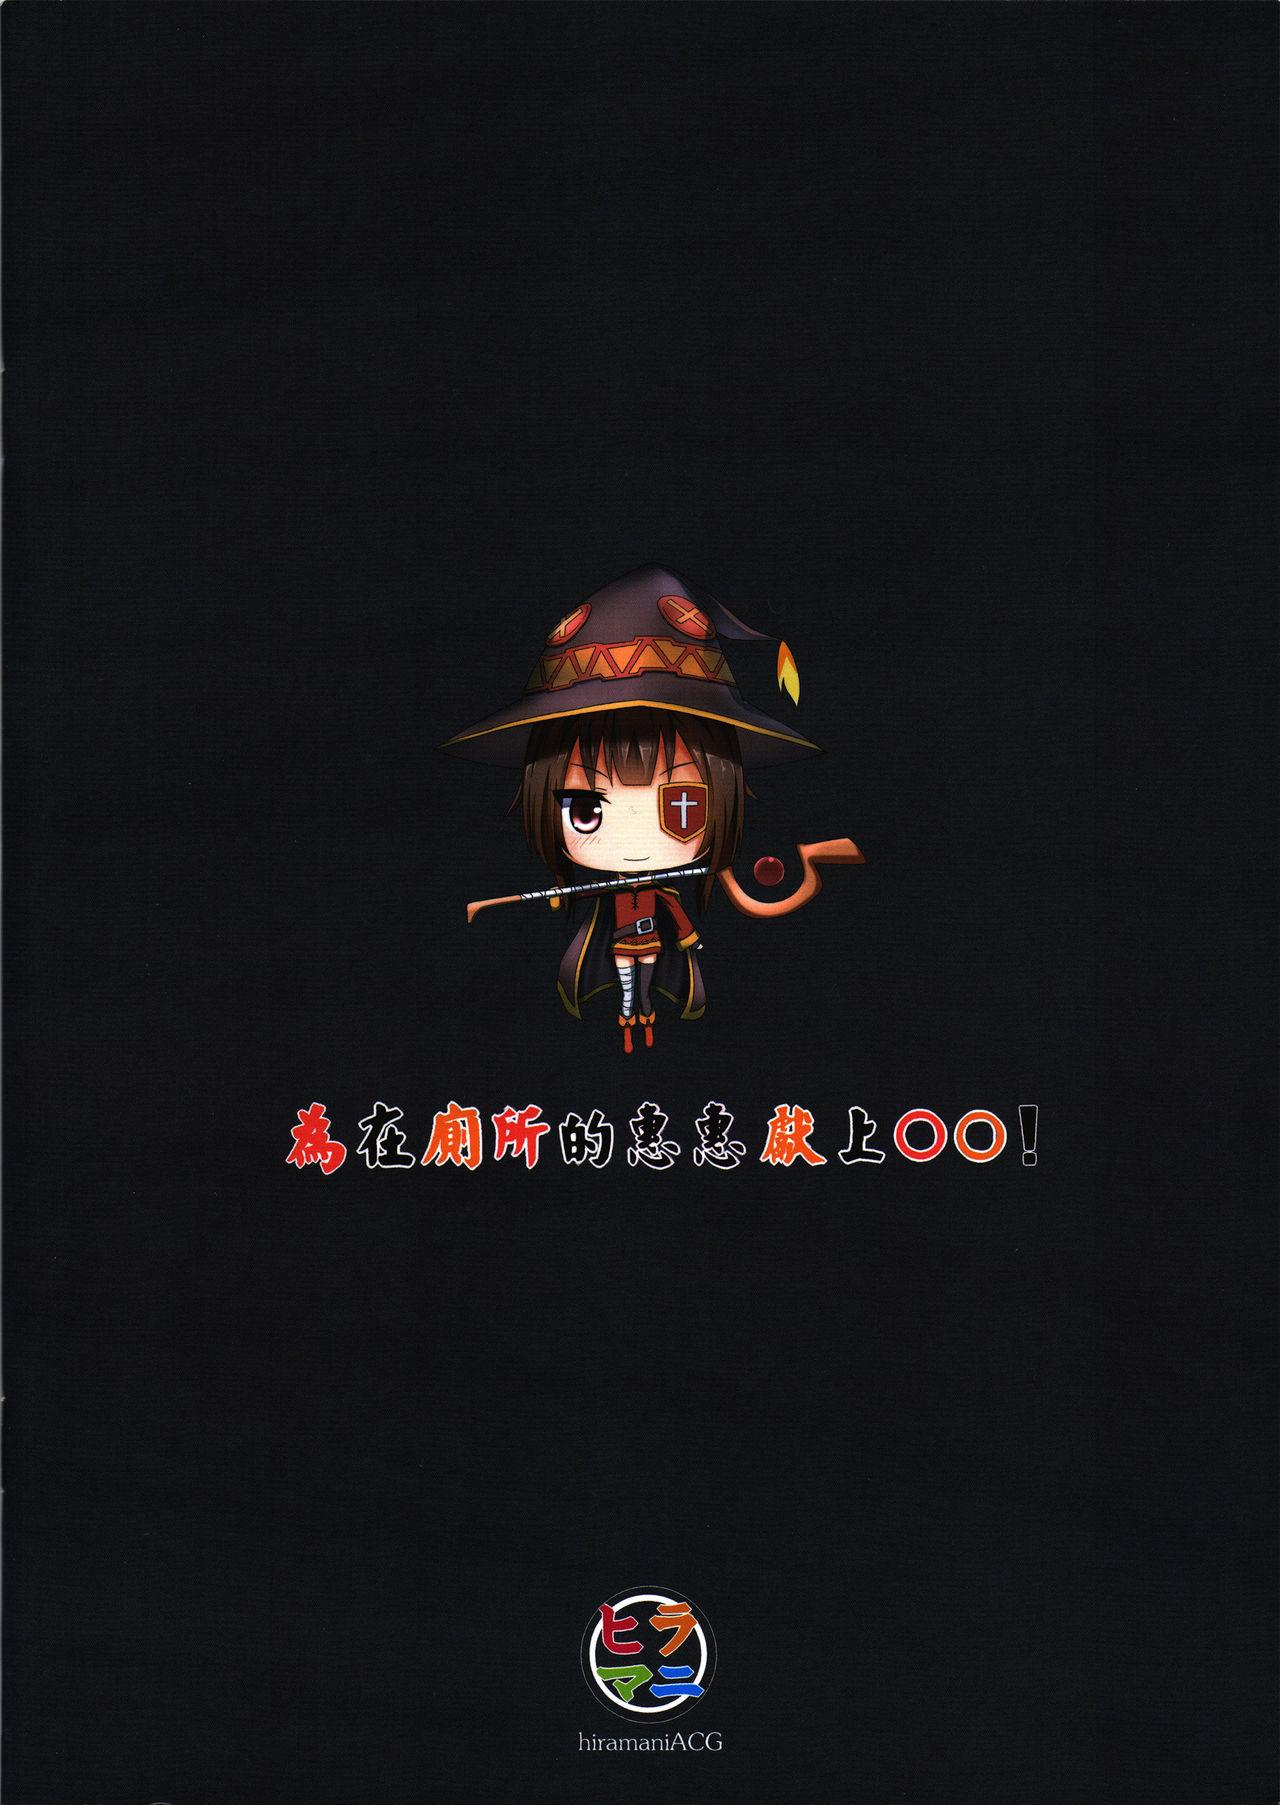 Giving ○○ to Megumin in the Toilet! 17